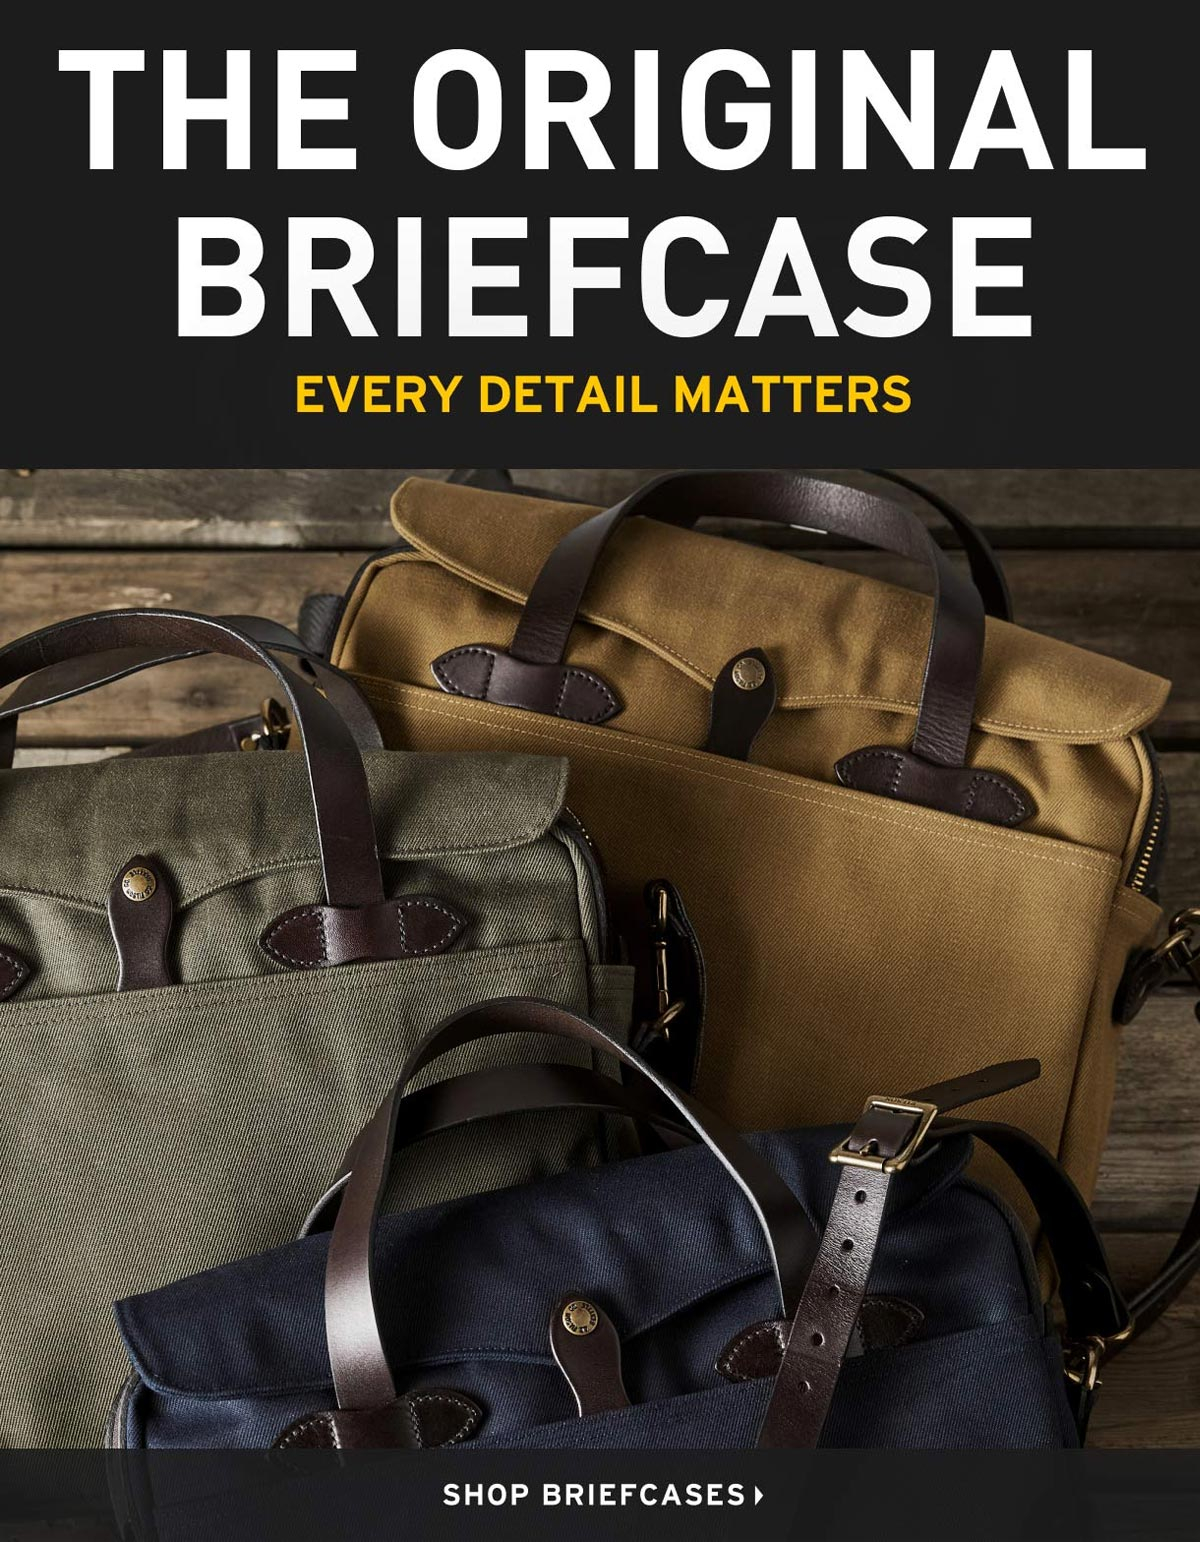 Filson Original Briefcase Navy, Tan and OtterGreen, every detail matters